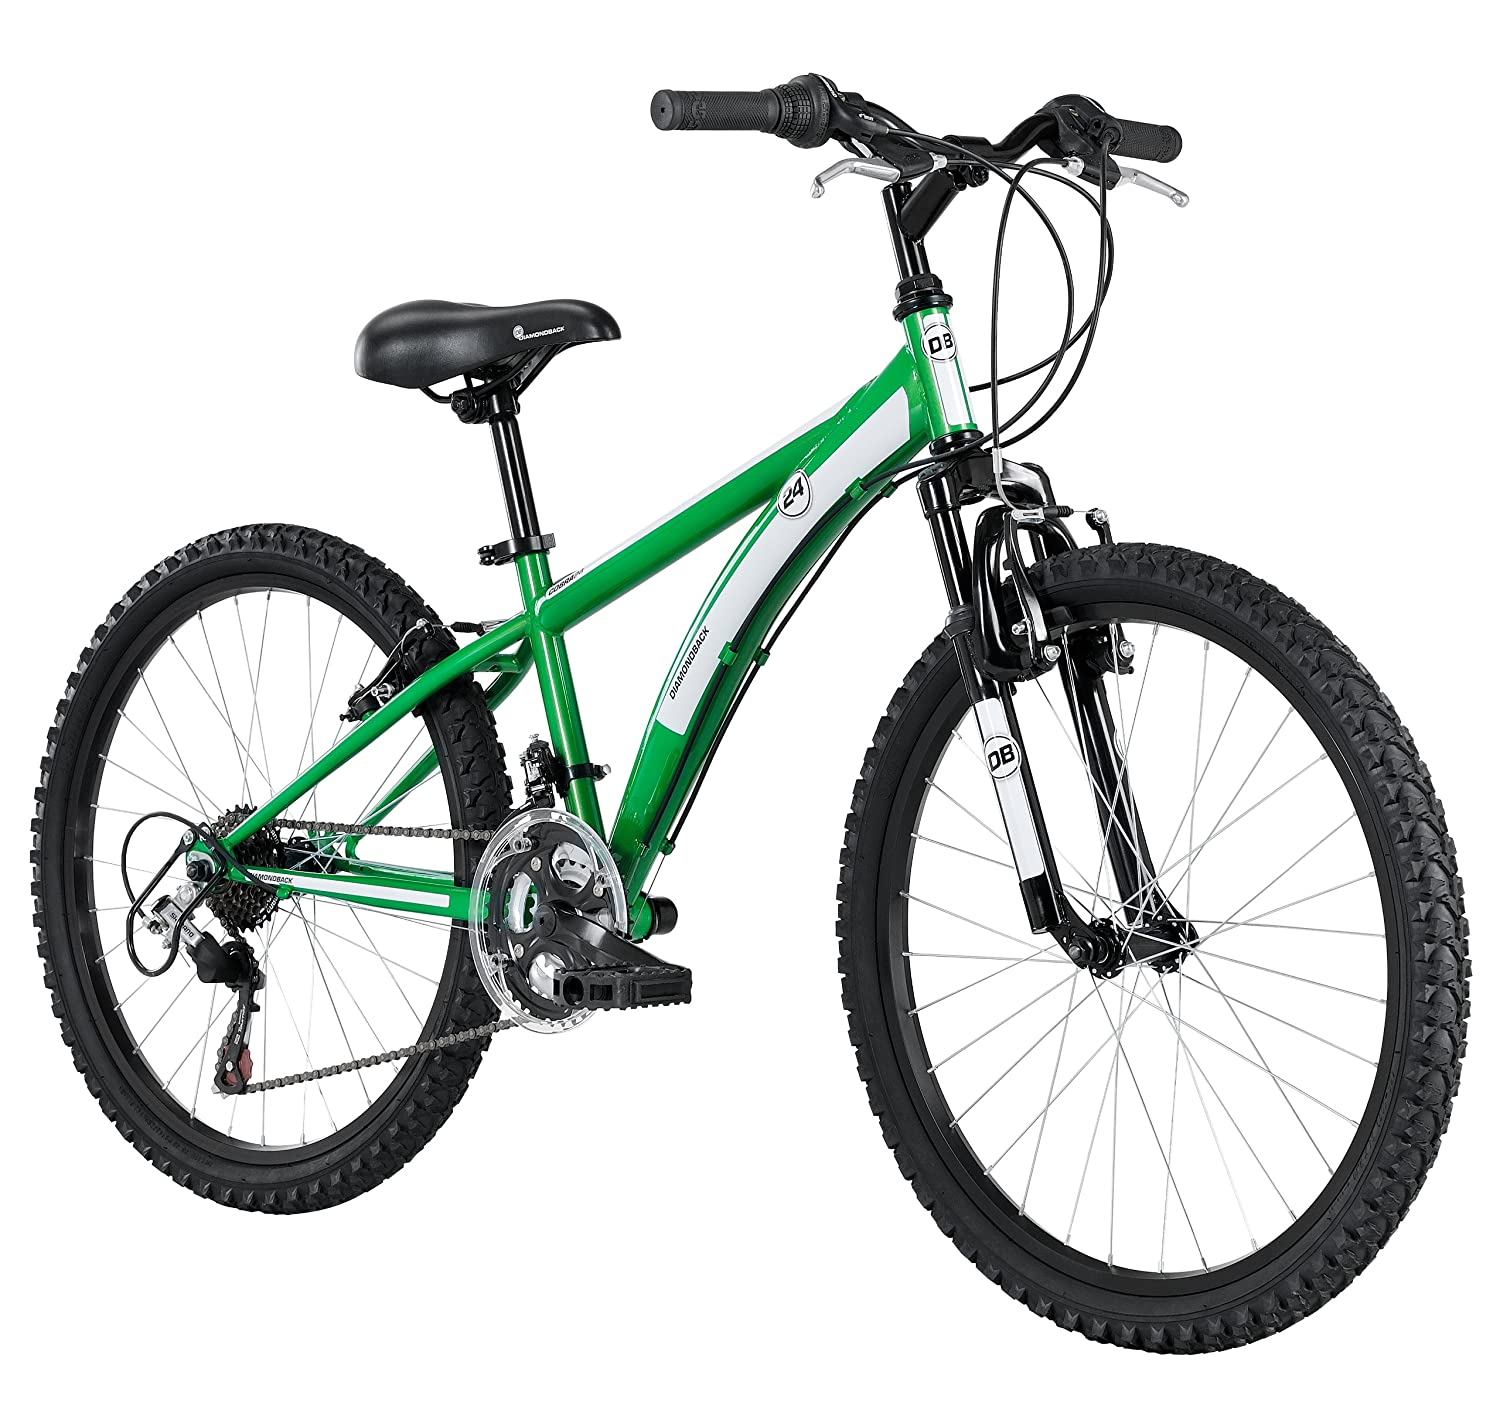 Bikes For Boys 24 Green Diamondback Bicycles